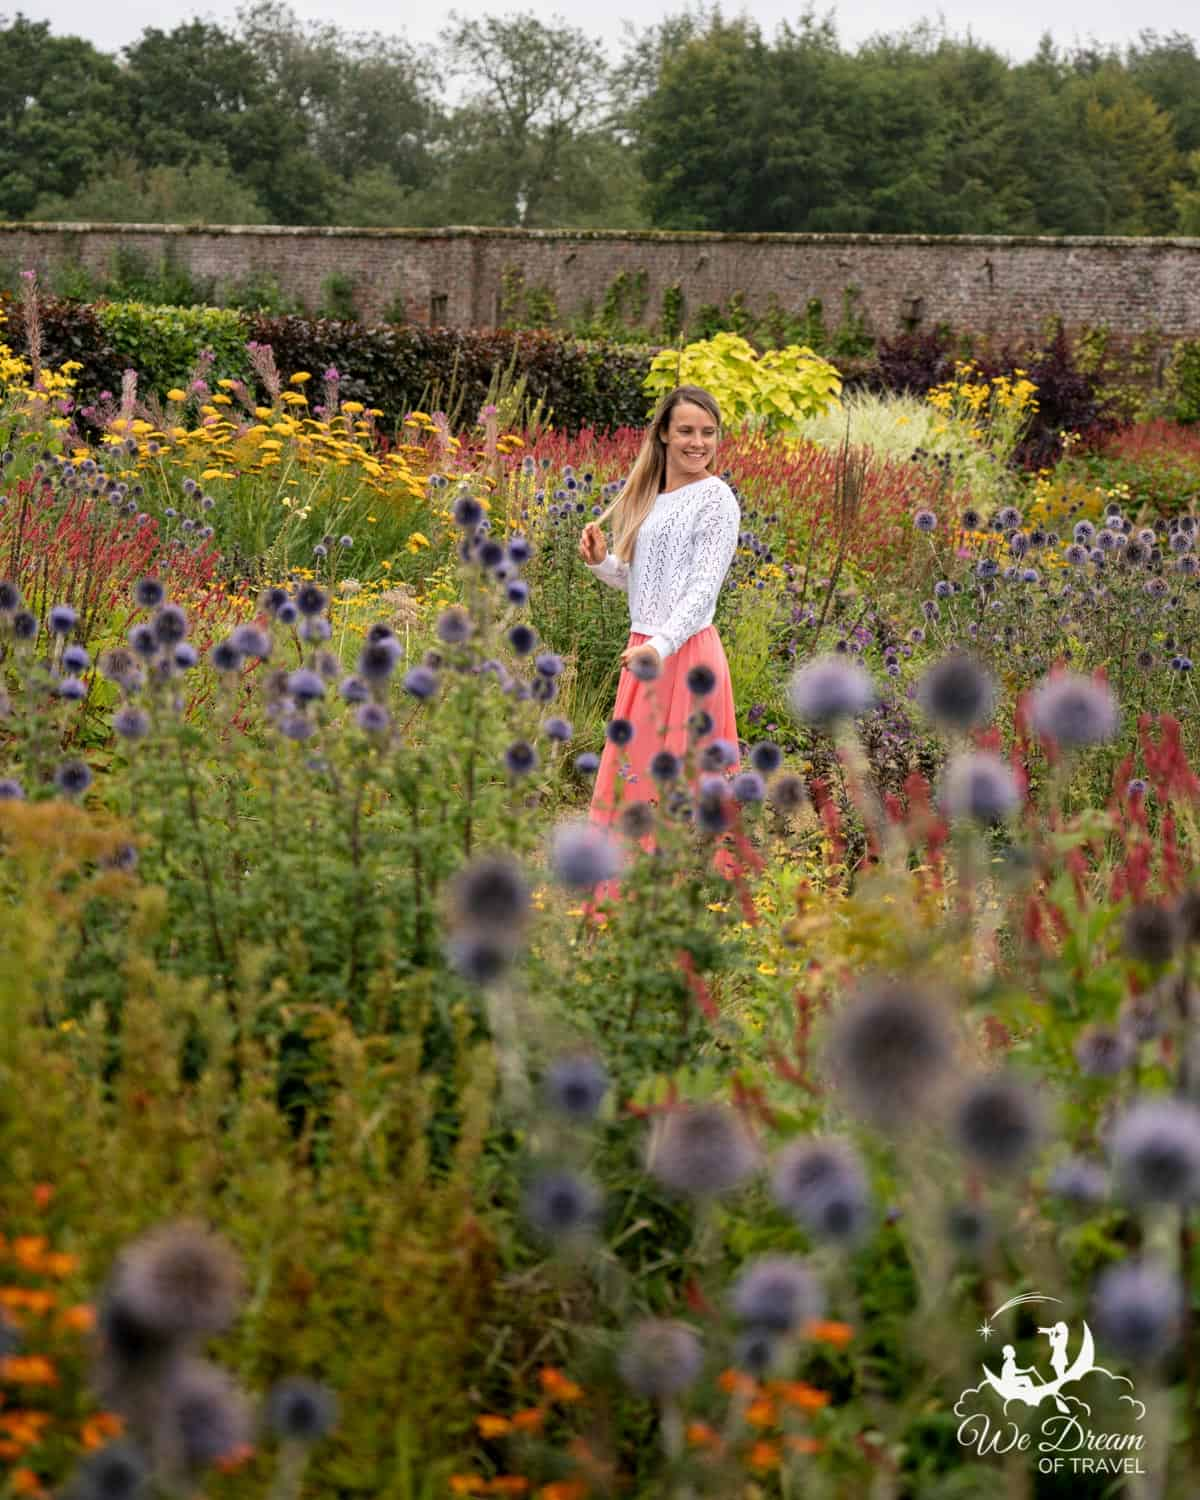 A girl amongst a sea of flowers at Helmsley Walled Gardens - one of the best day trips from York